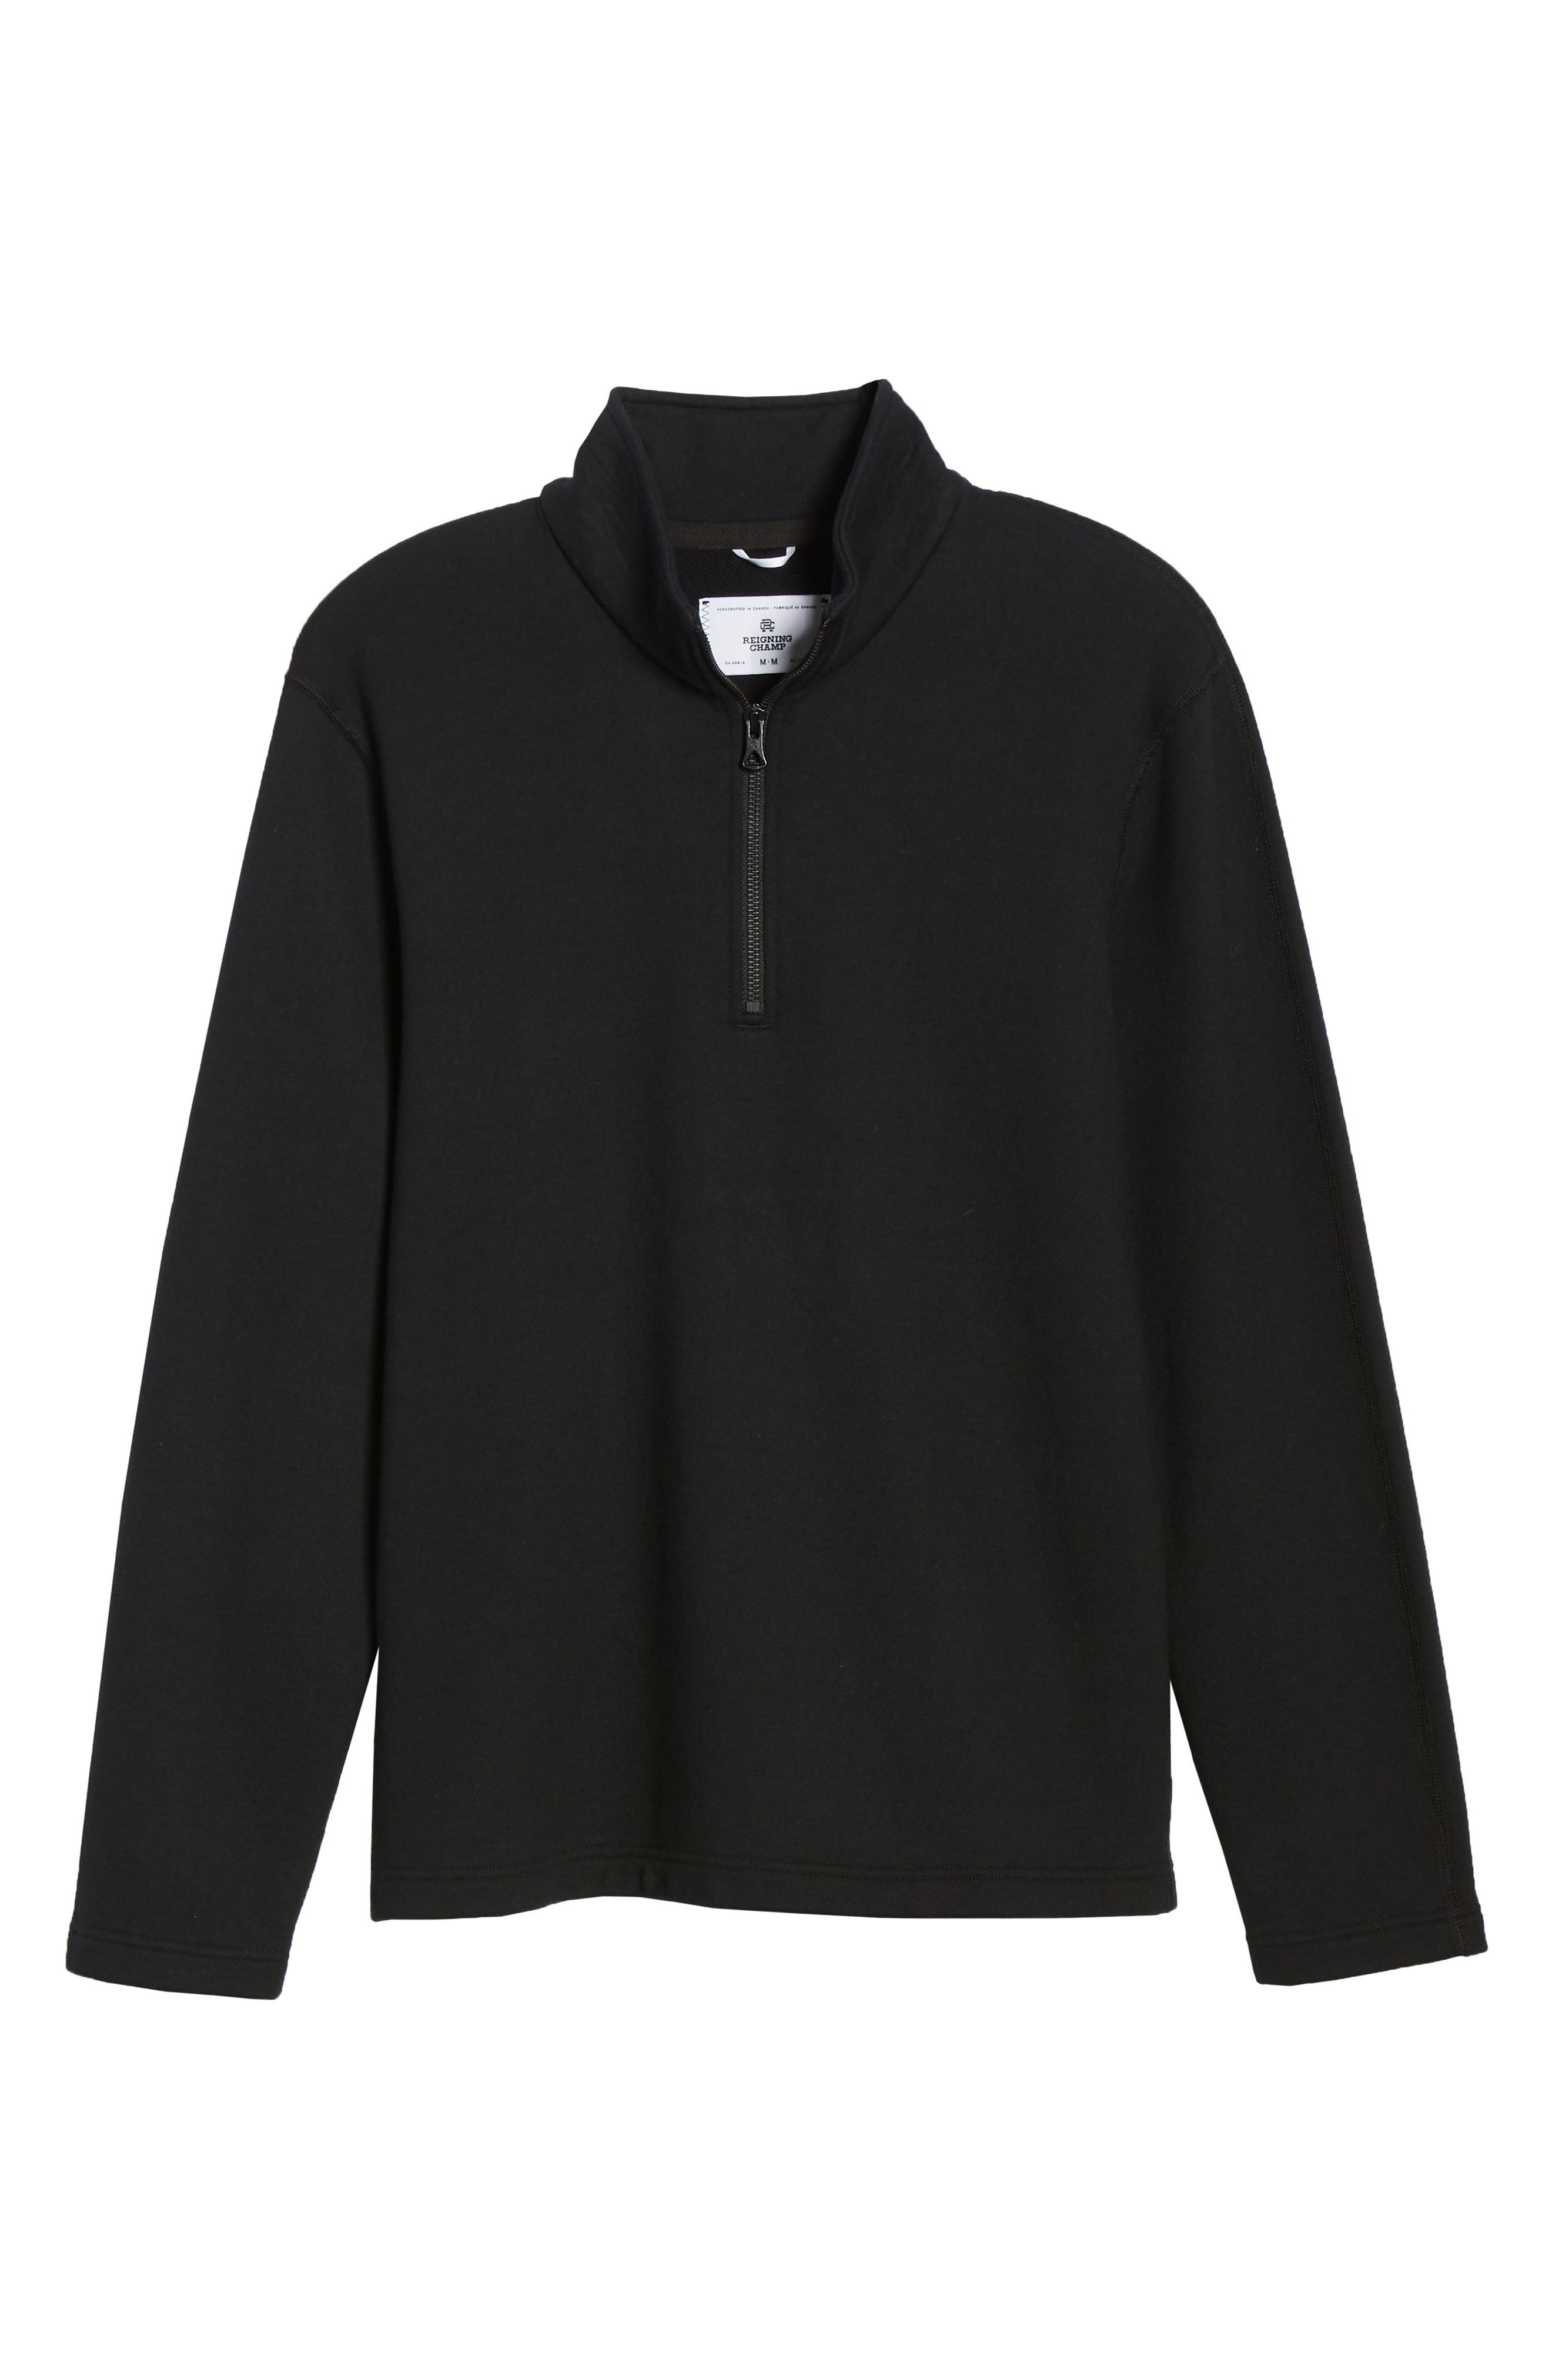 REIGNING CHAMP, Half Zip Pullover, Alternate thumbnail 6, color, 001